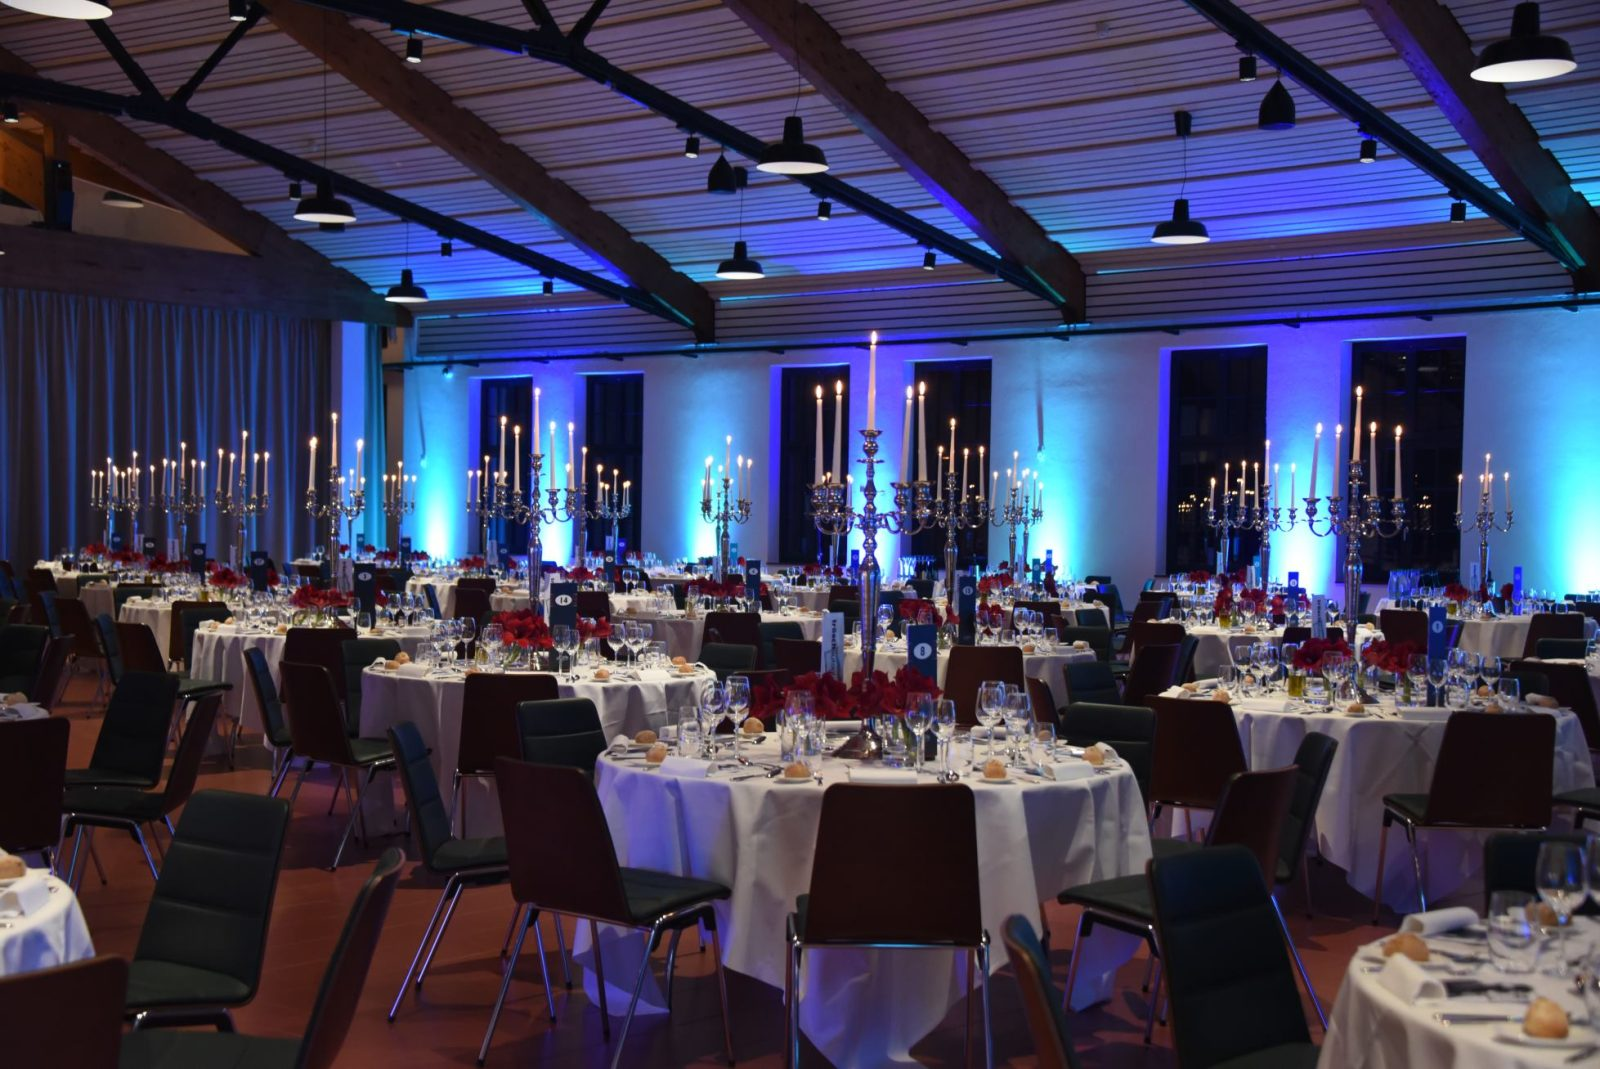 Event Center Rooms for ideas